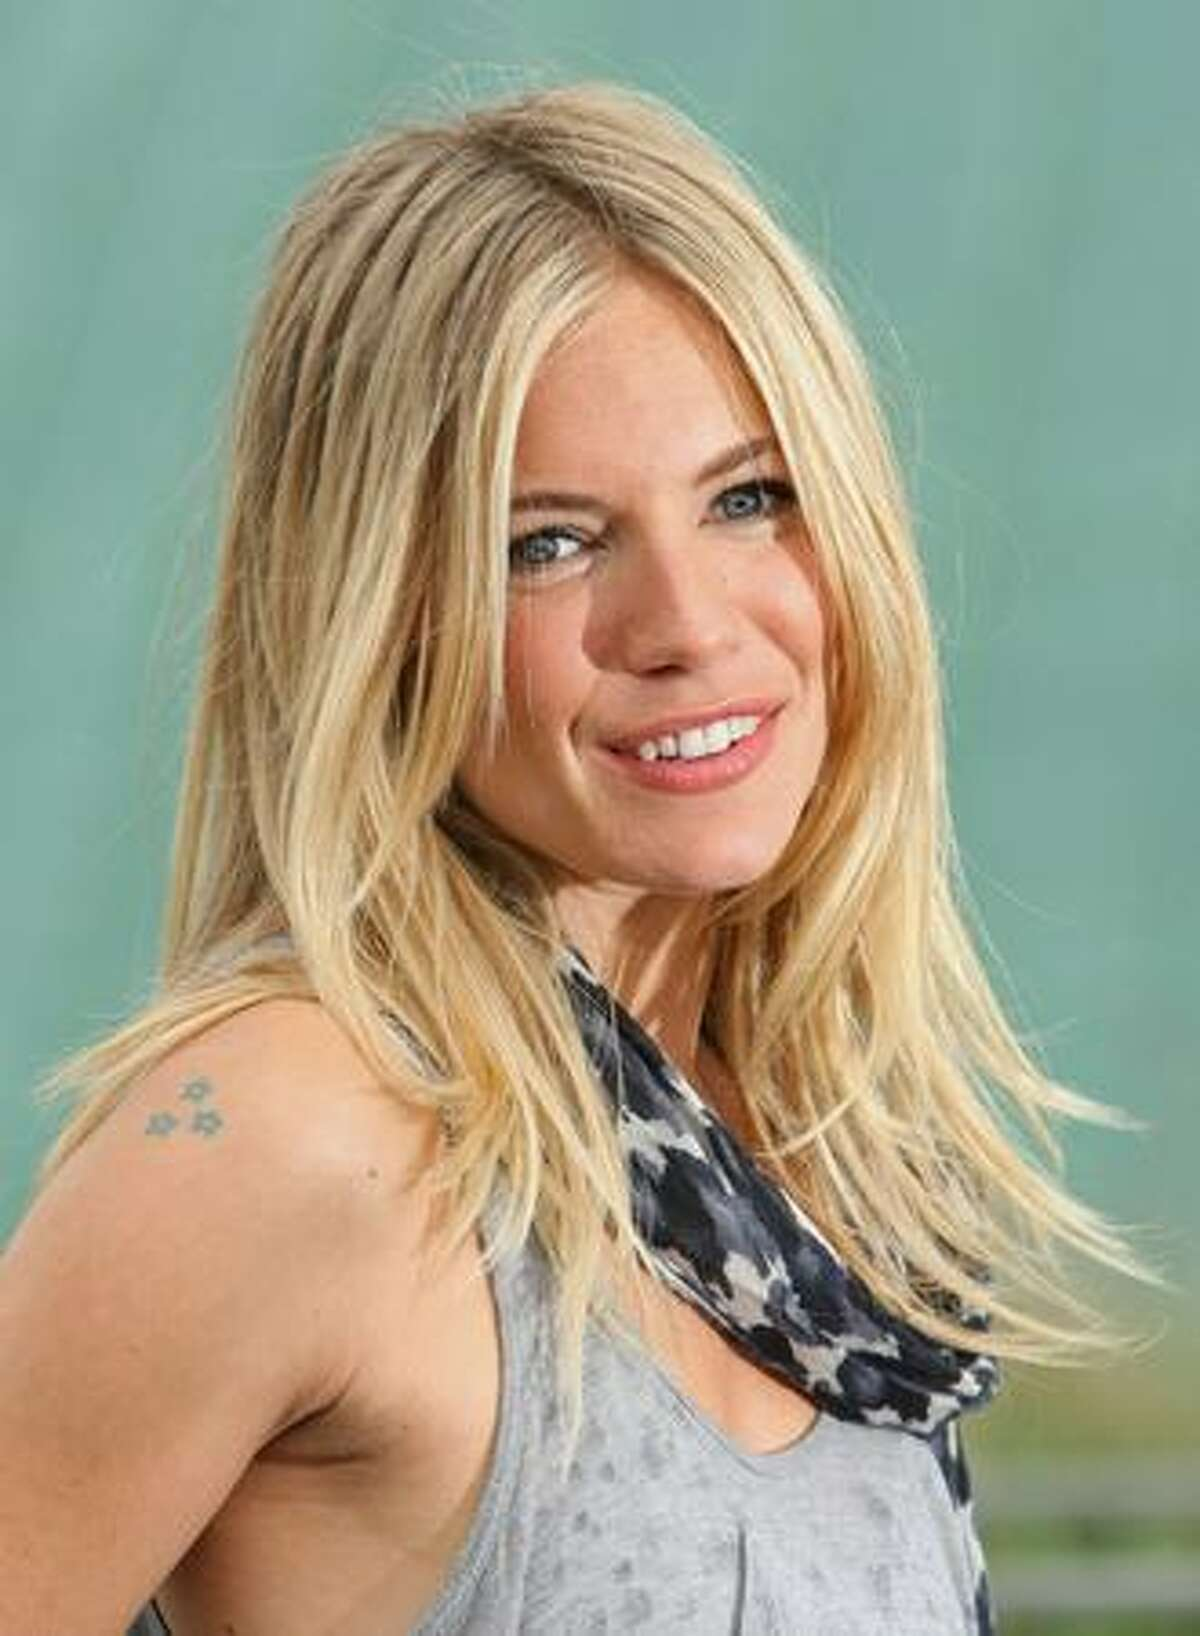 Actress Sienna Miller attends the photocall for